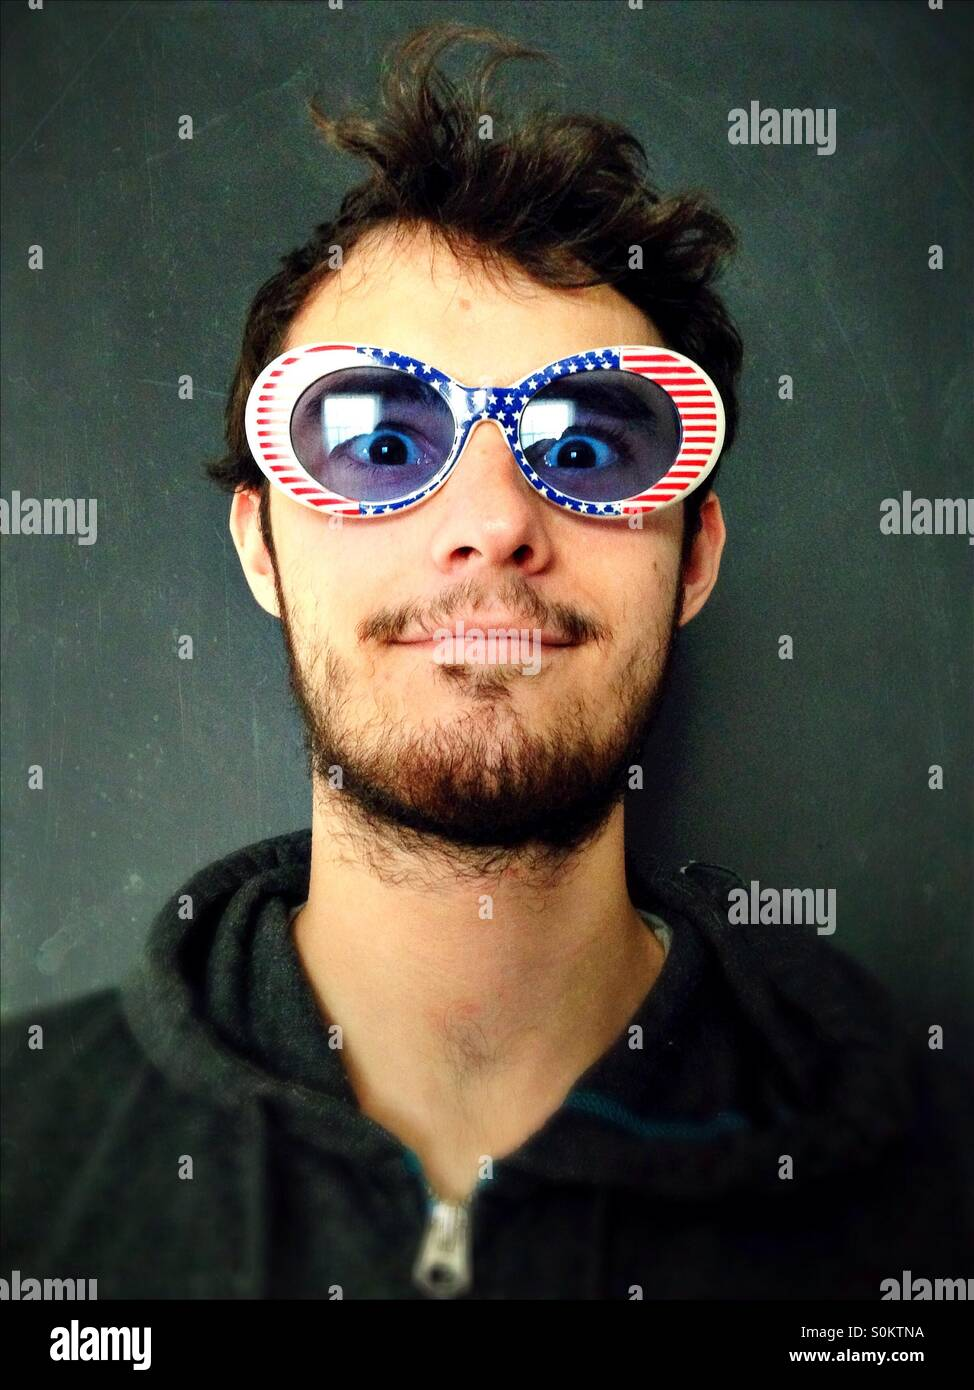 eea8ef207714 Patriotic Man Stock Photos   Patriotic Man Stock Images - Alamy